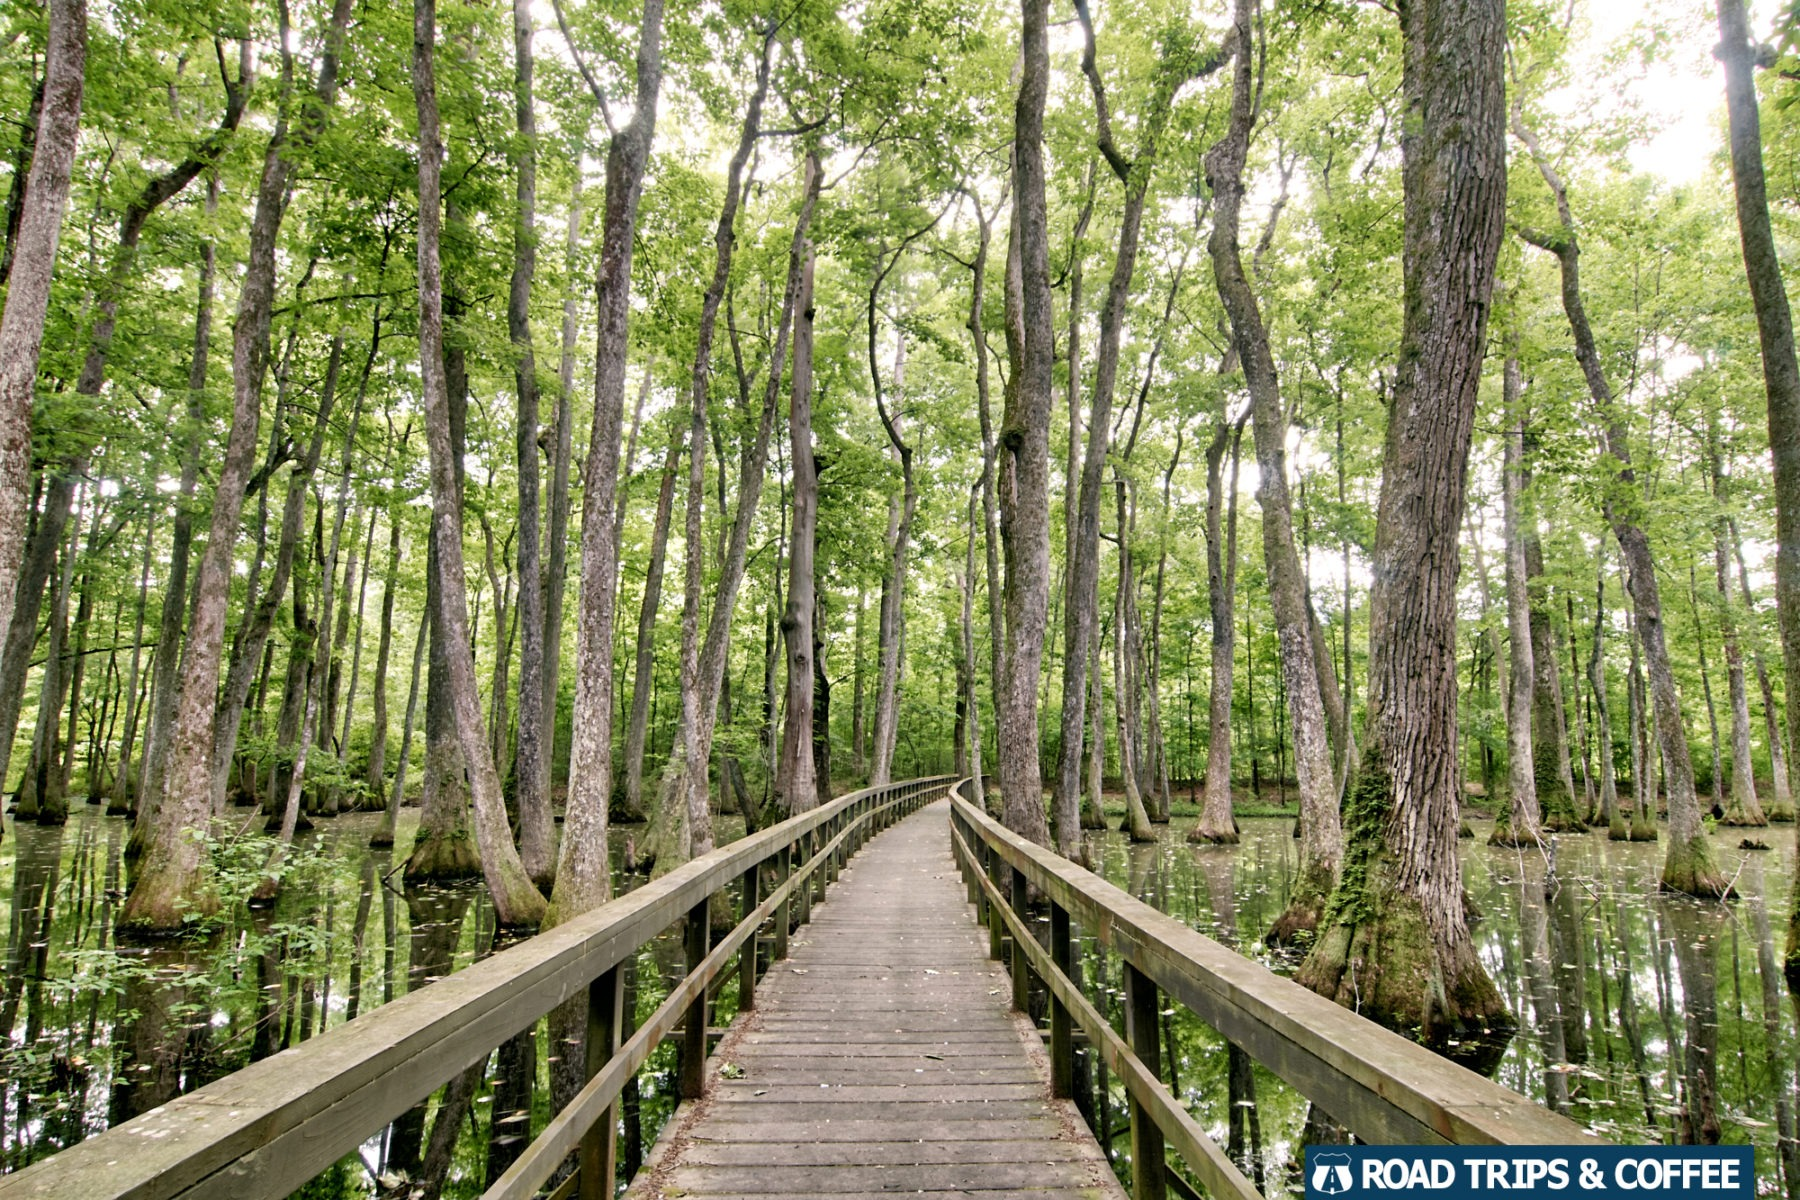 A long wooden boardwalk crosses Cypress Swamp on the Natchez Trace Parkway in Mississippi